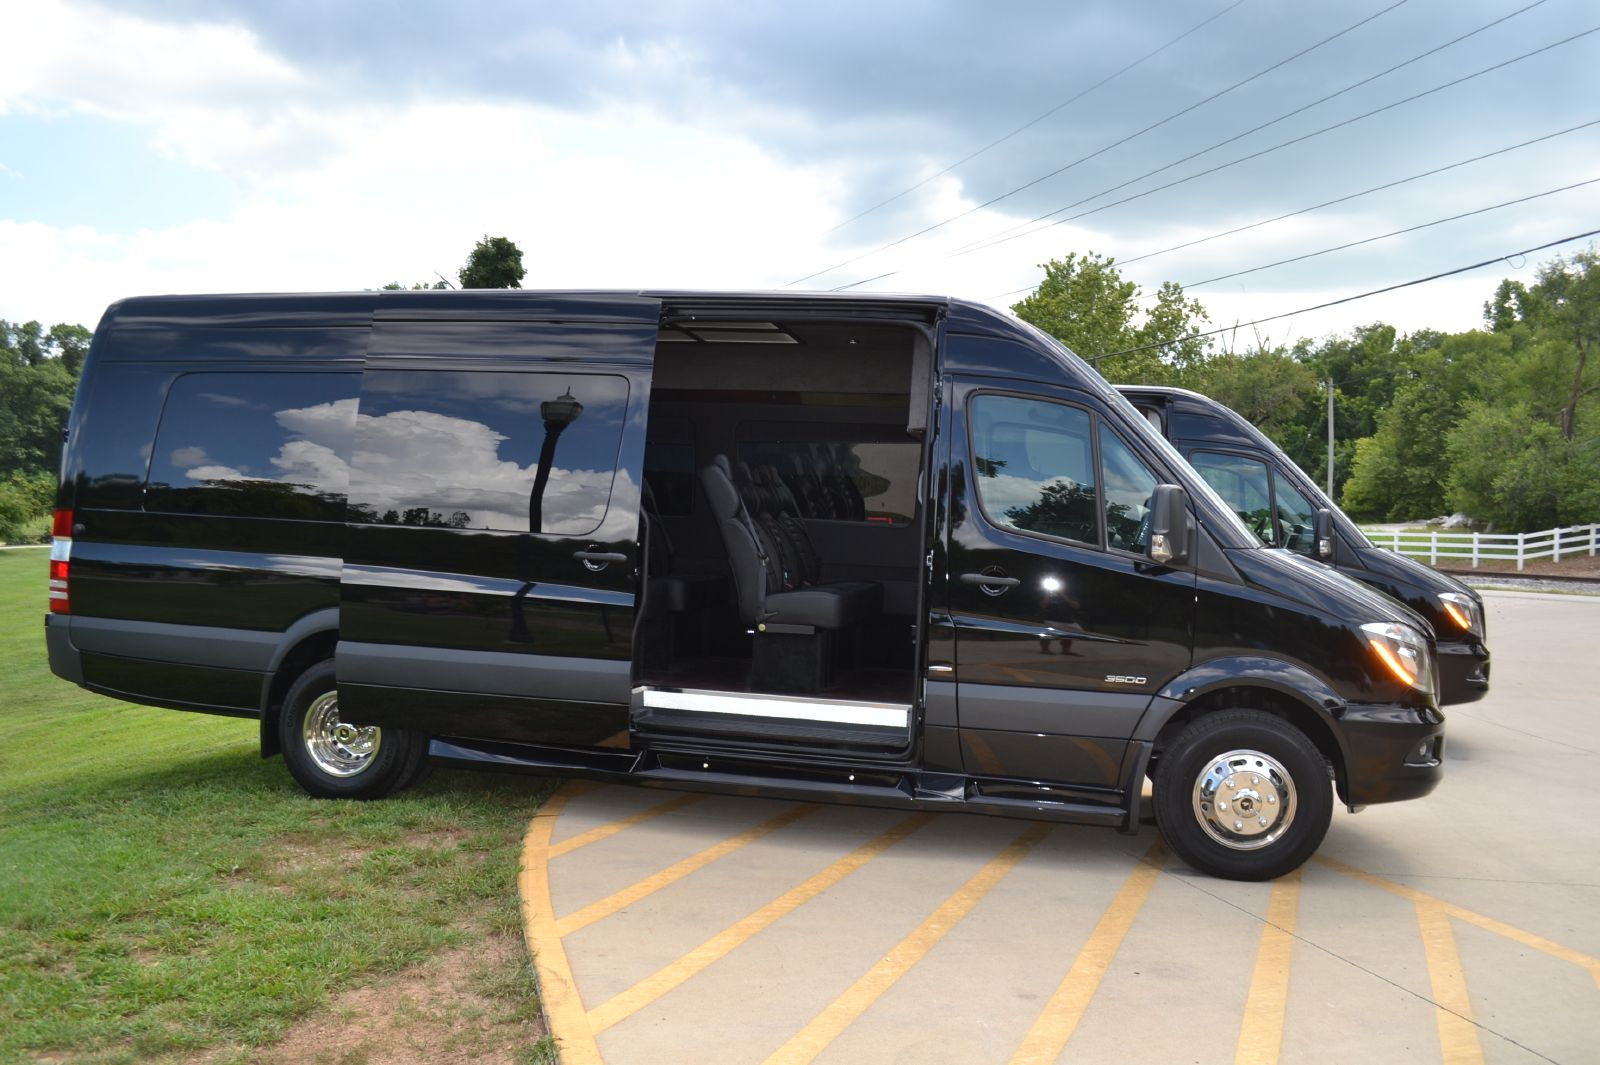 Hire vip executive mercedes sprinter van for Mercedes benz sprinter luxury van price